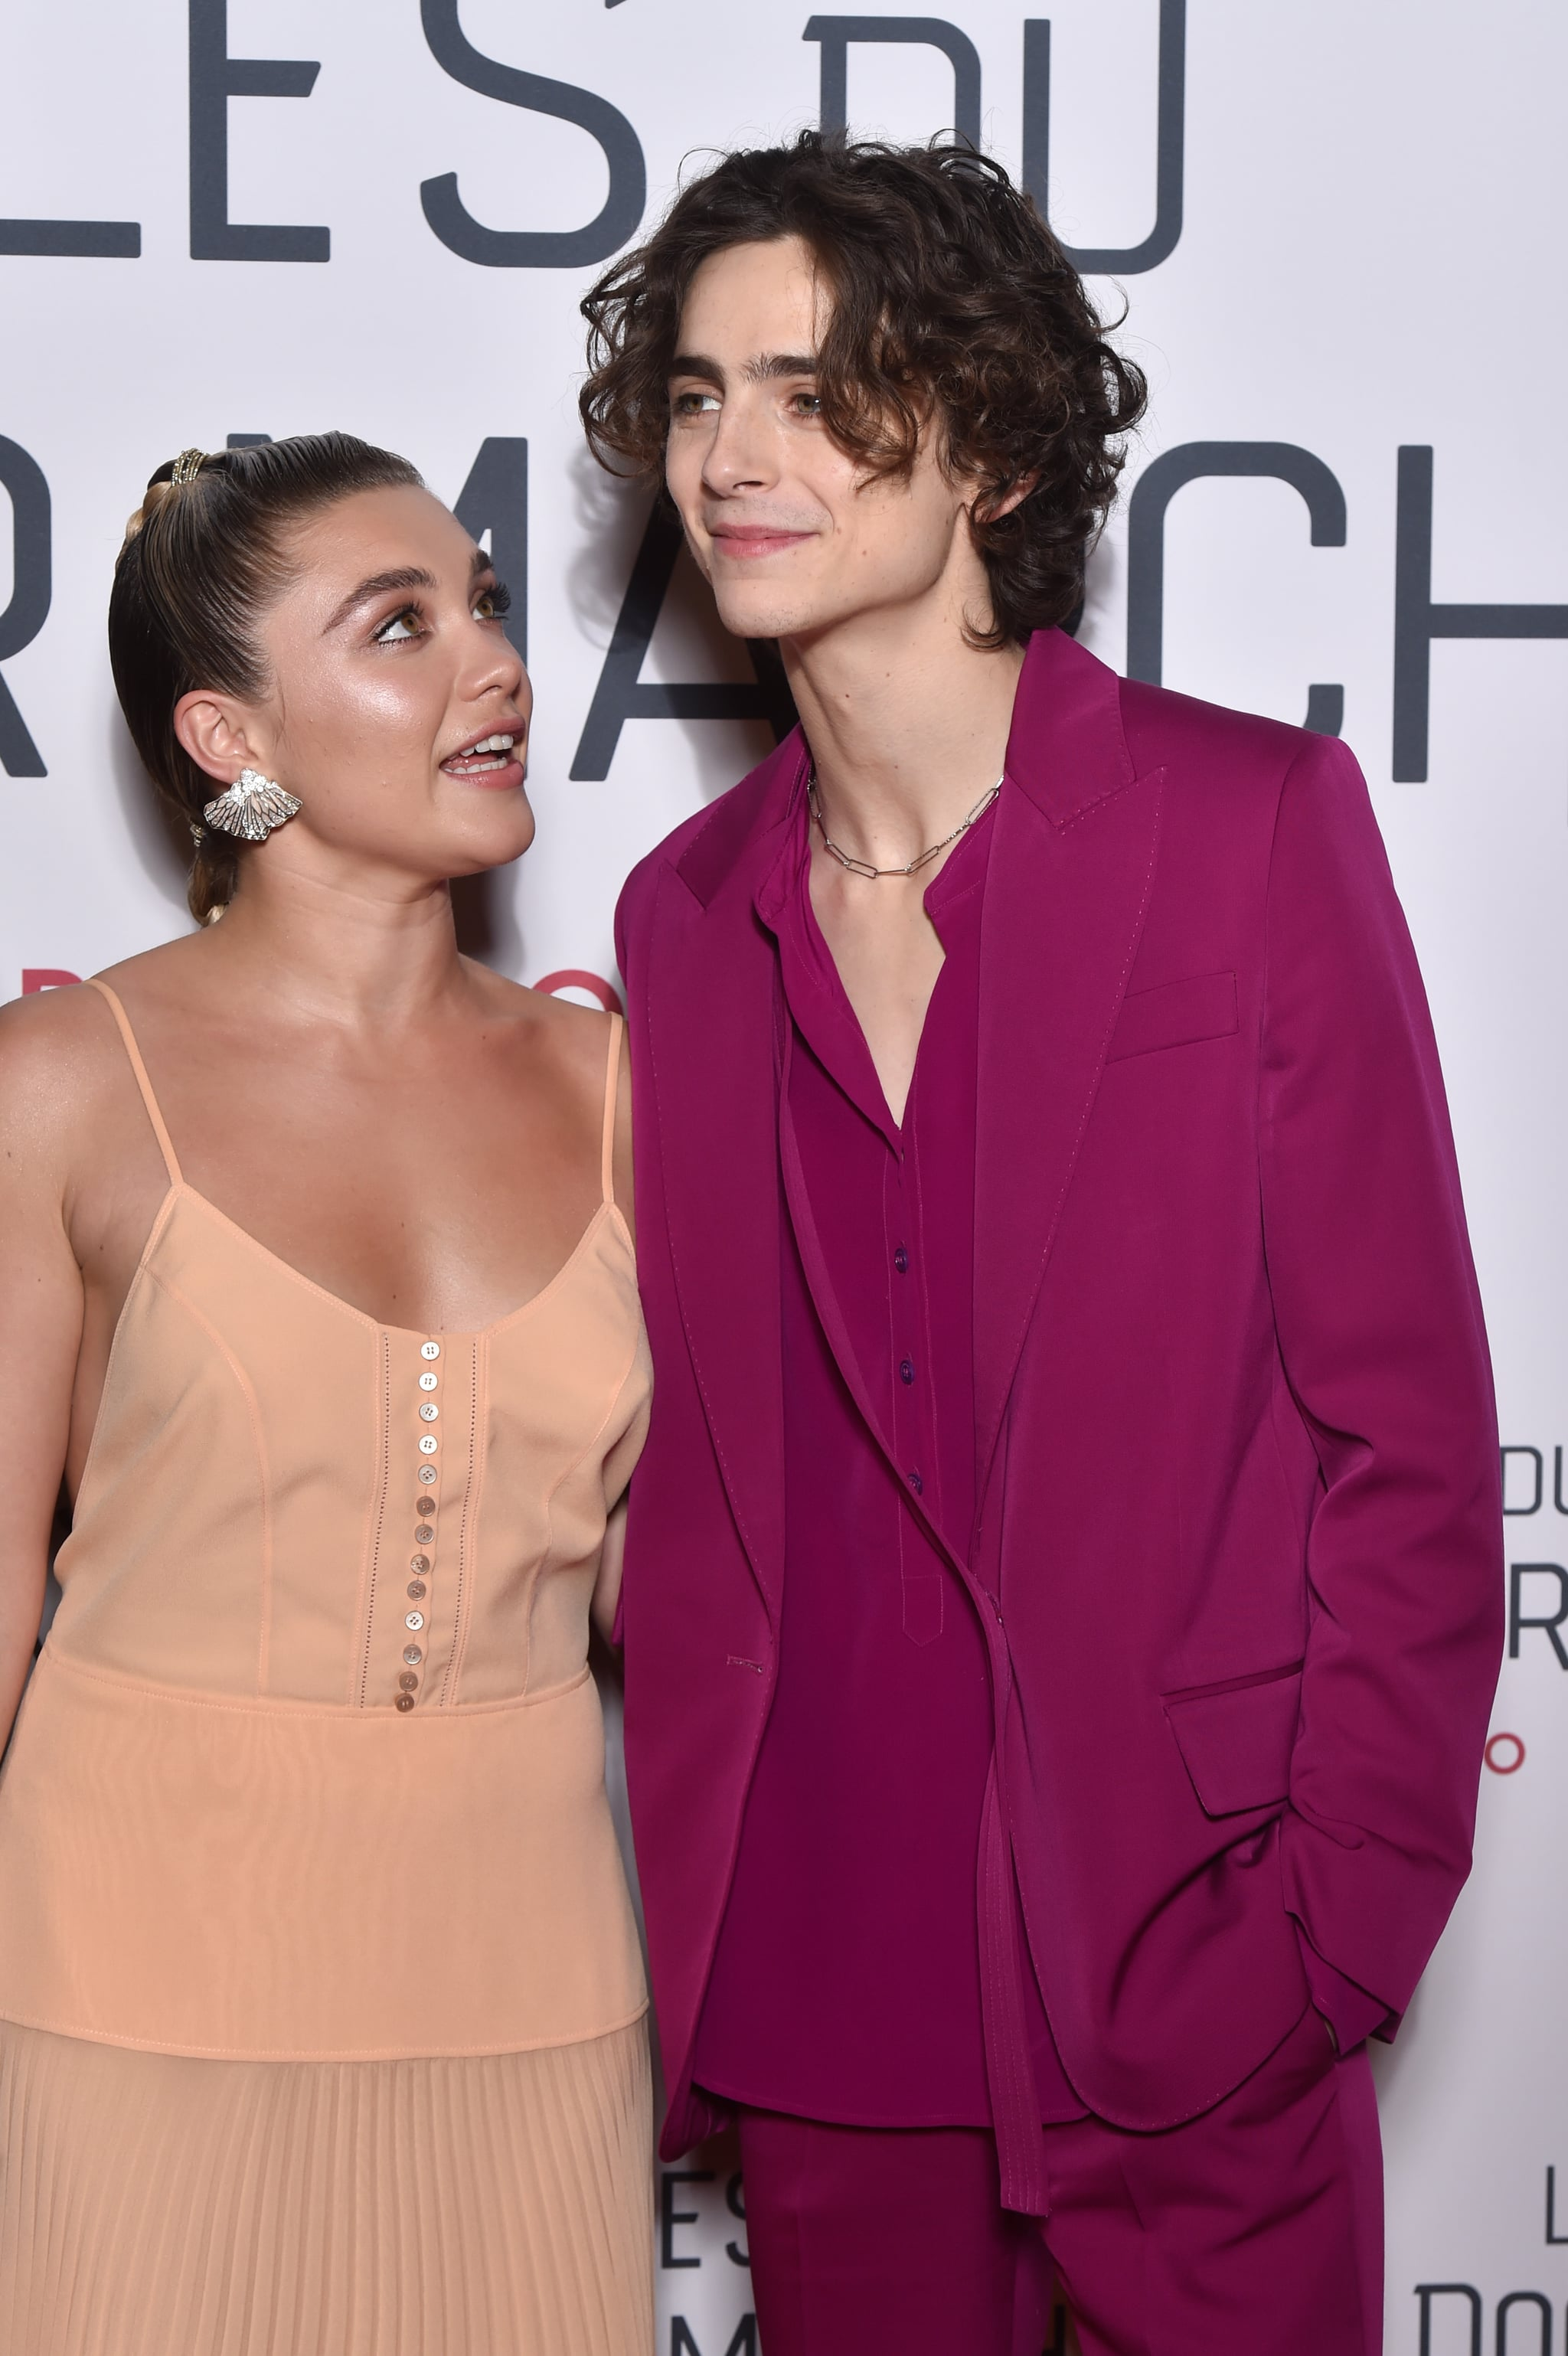 Florence Pugh N >> Florence Pugh And Timothee Chalamet At The Little Women